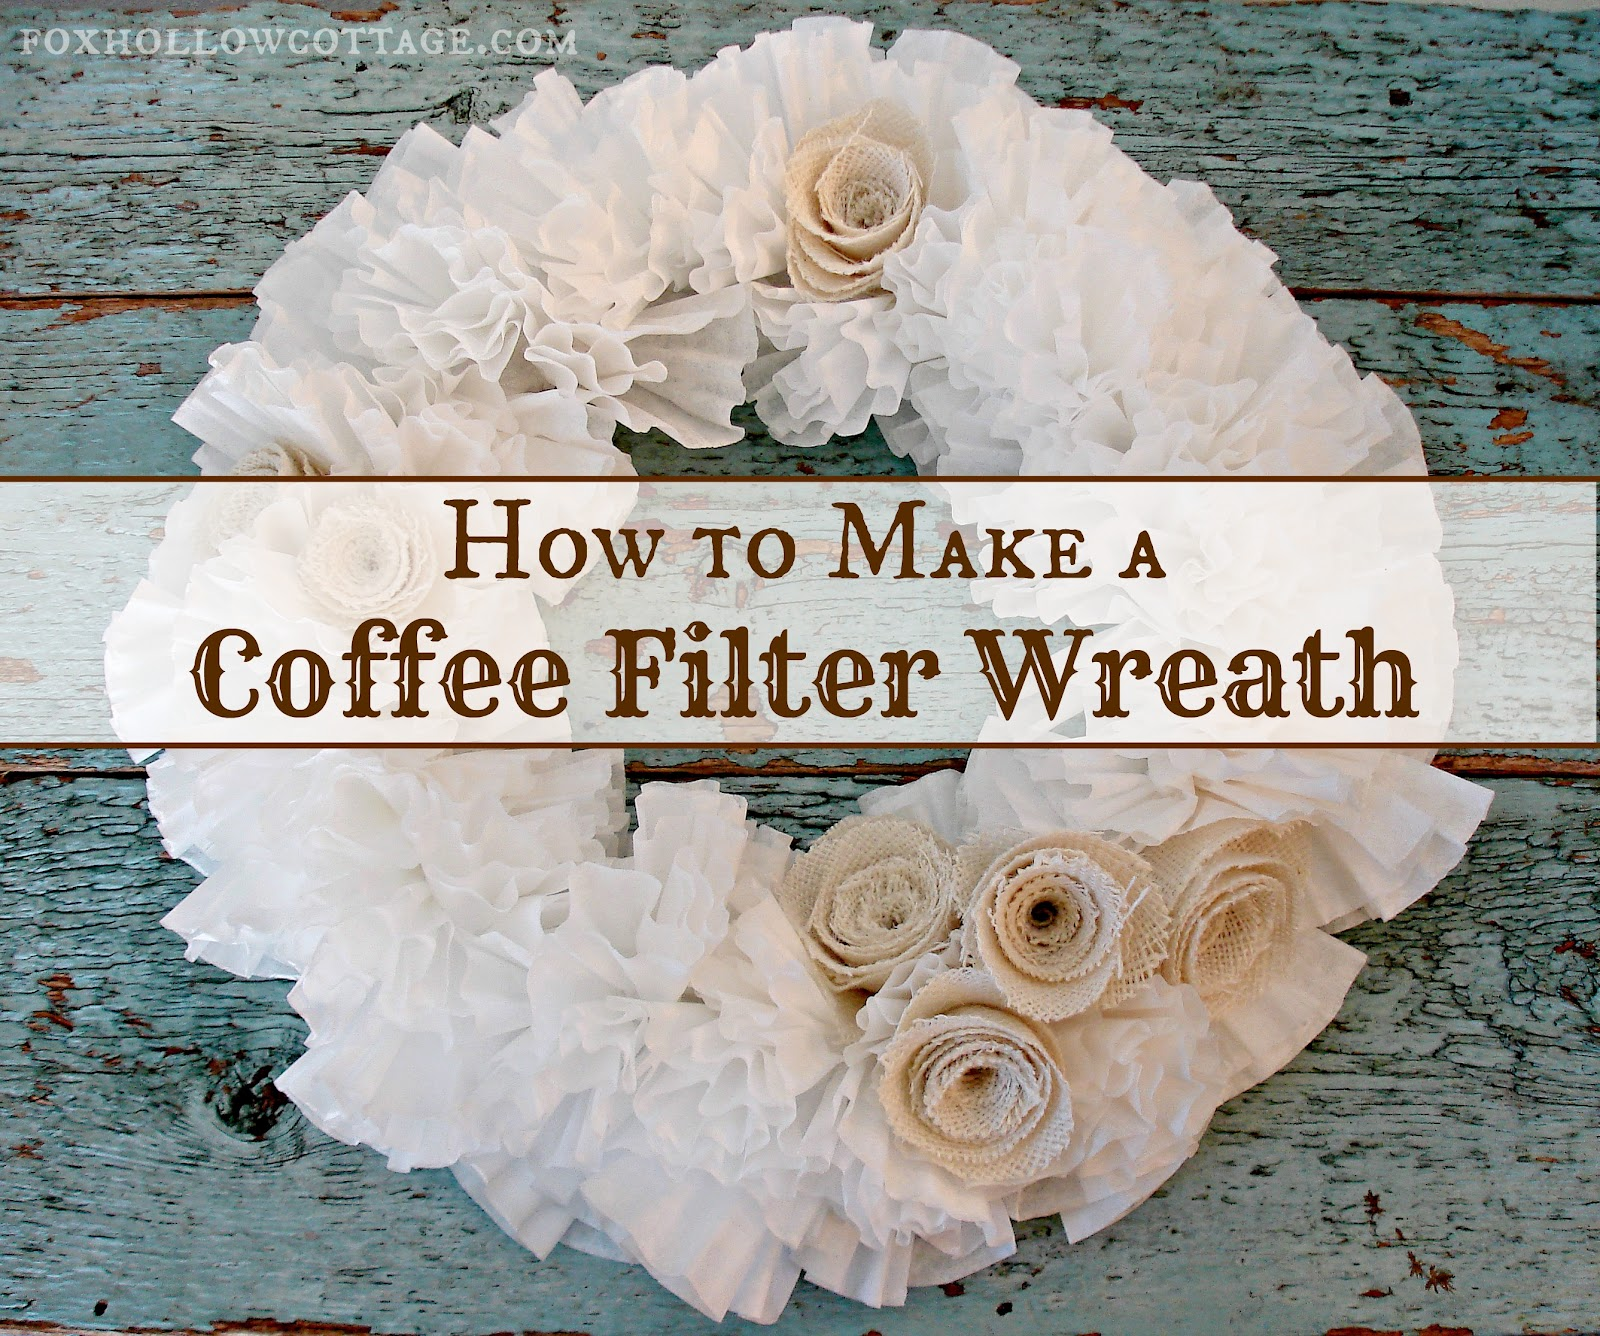 How to make a coffee filter wreath with burlap roses How to make coffee with a coffee maker